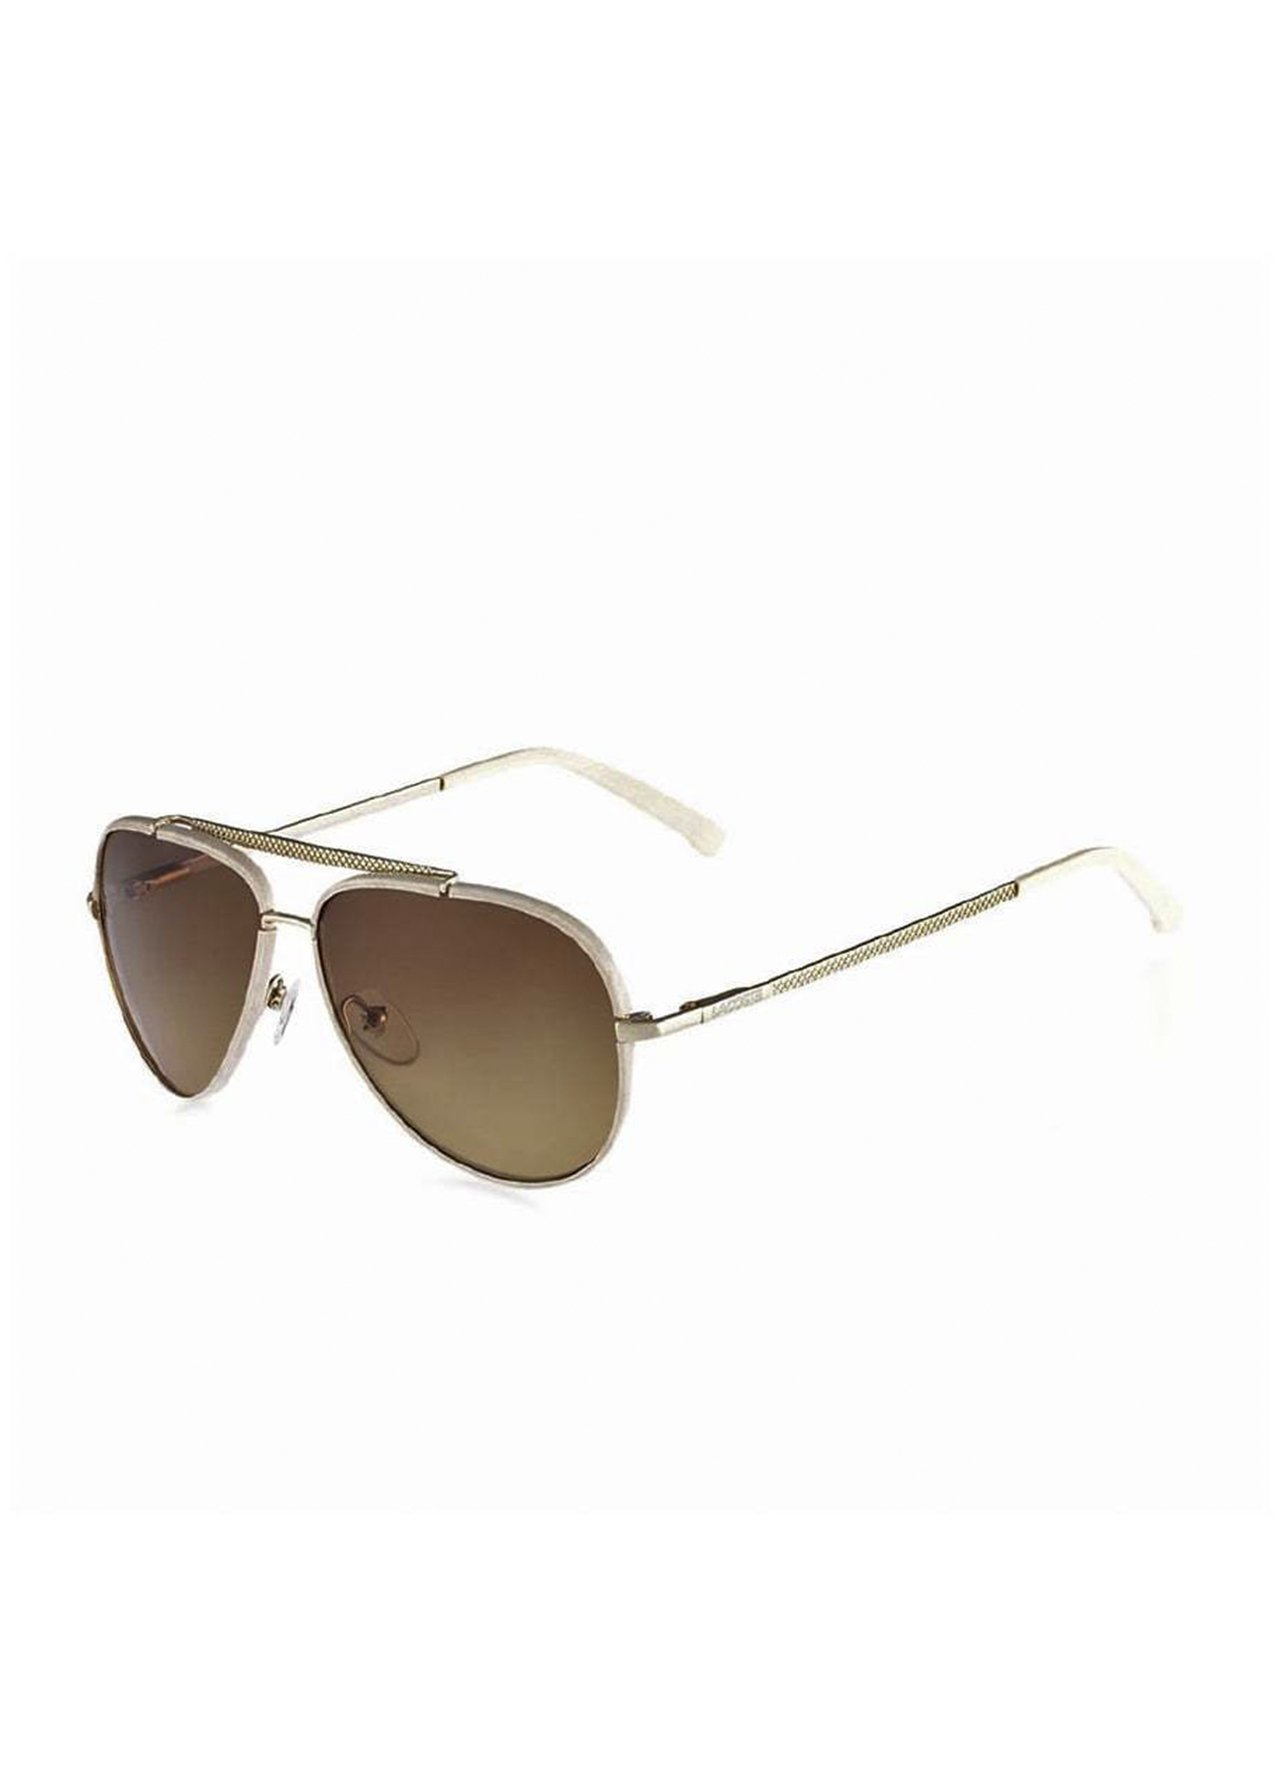 44e830ff6d94 Accessories - Eyewear - Lacoste Ladies Sunglasses (B900) from County ...